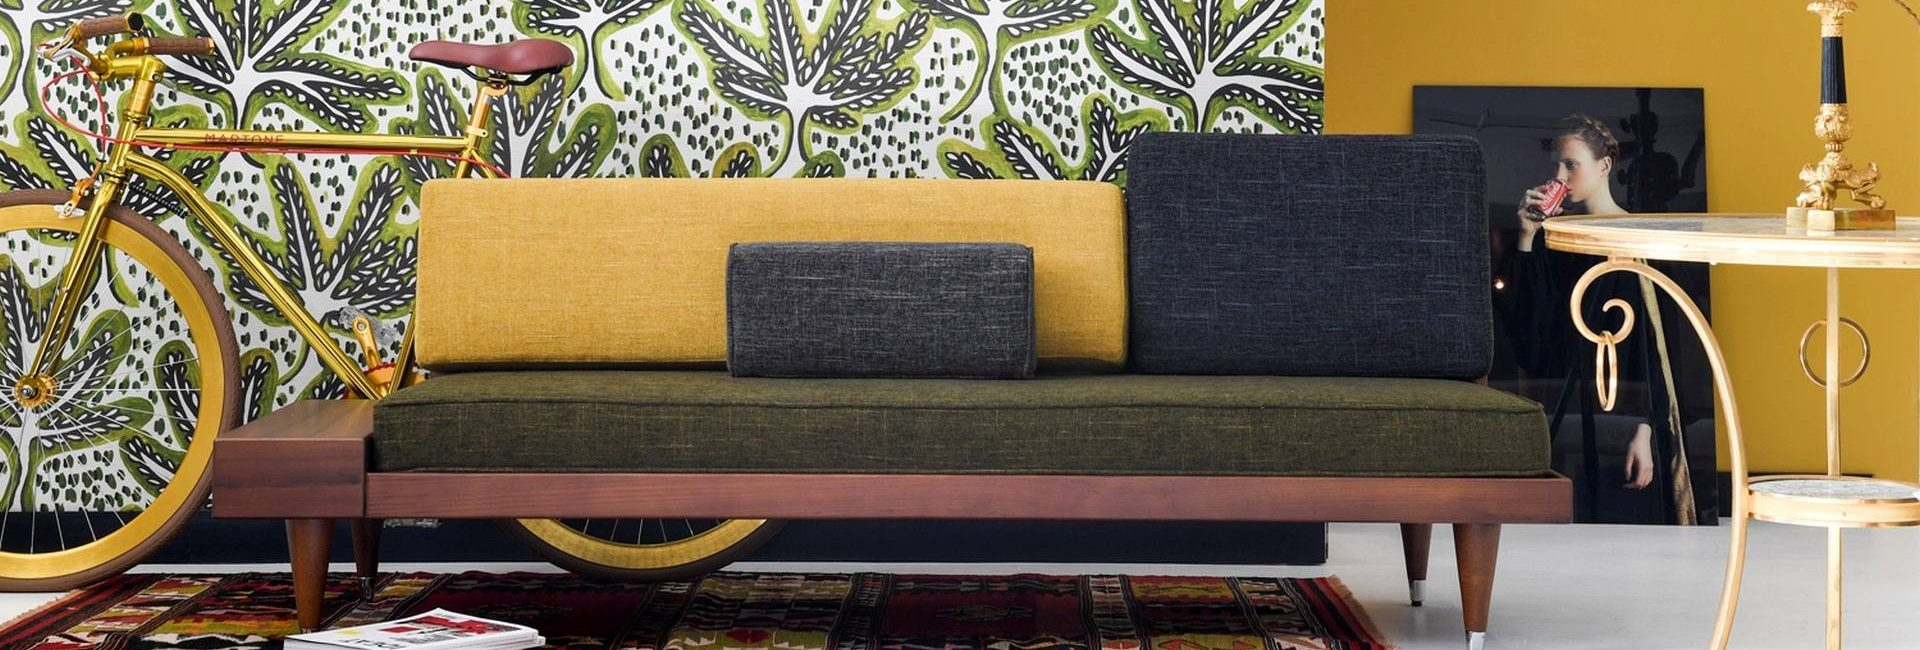 Pierre Frey fabrics and wallpapers - available from Fabric Gallery and Interiors in Dunnington, York